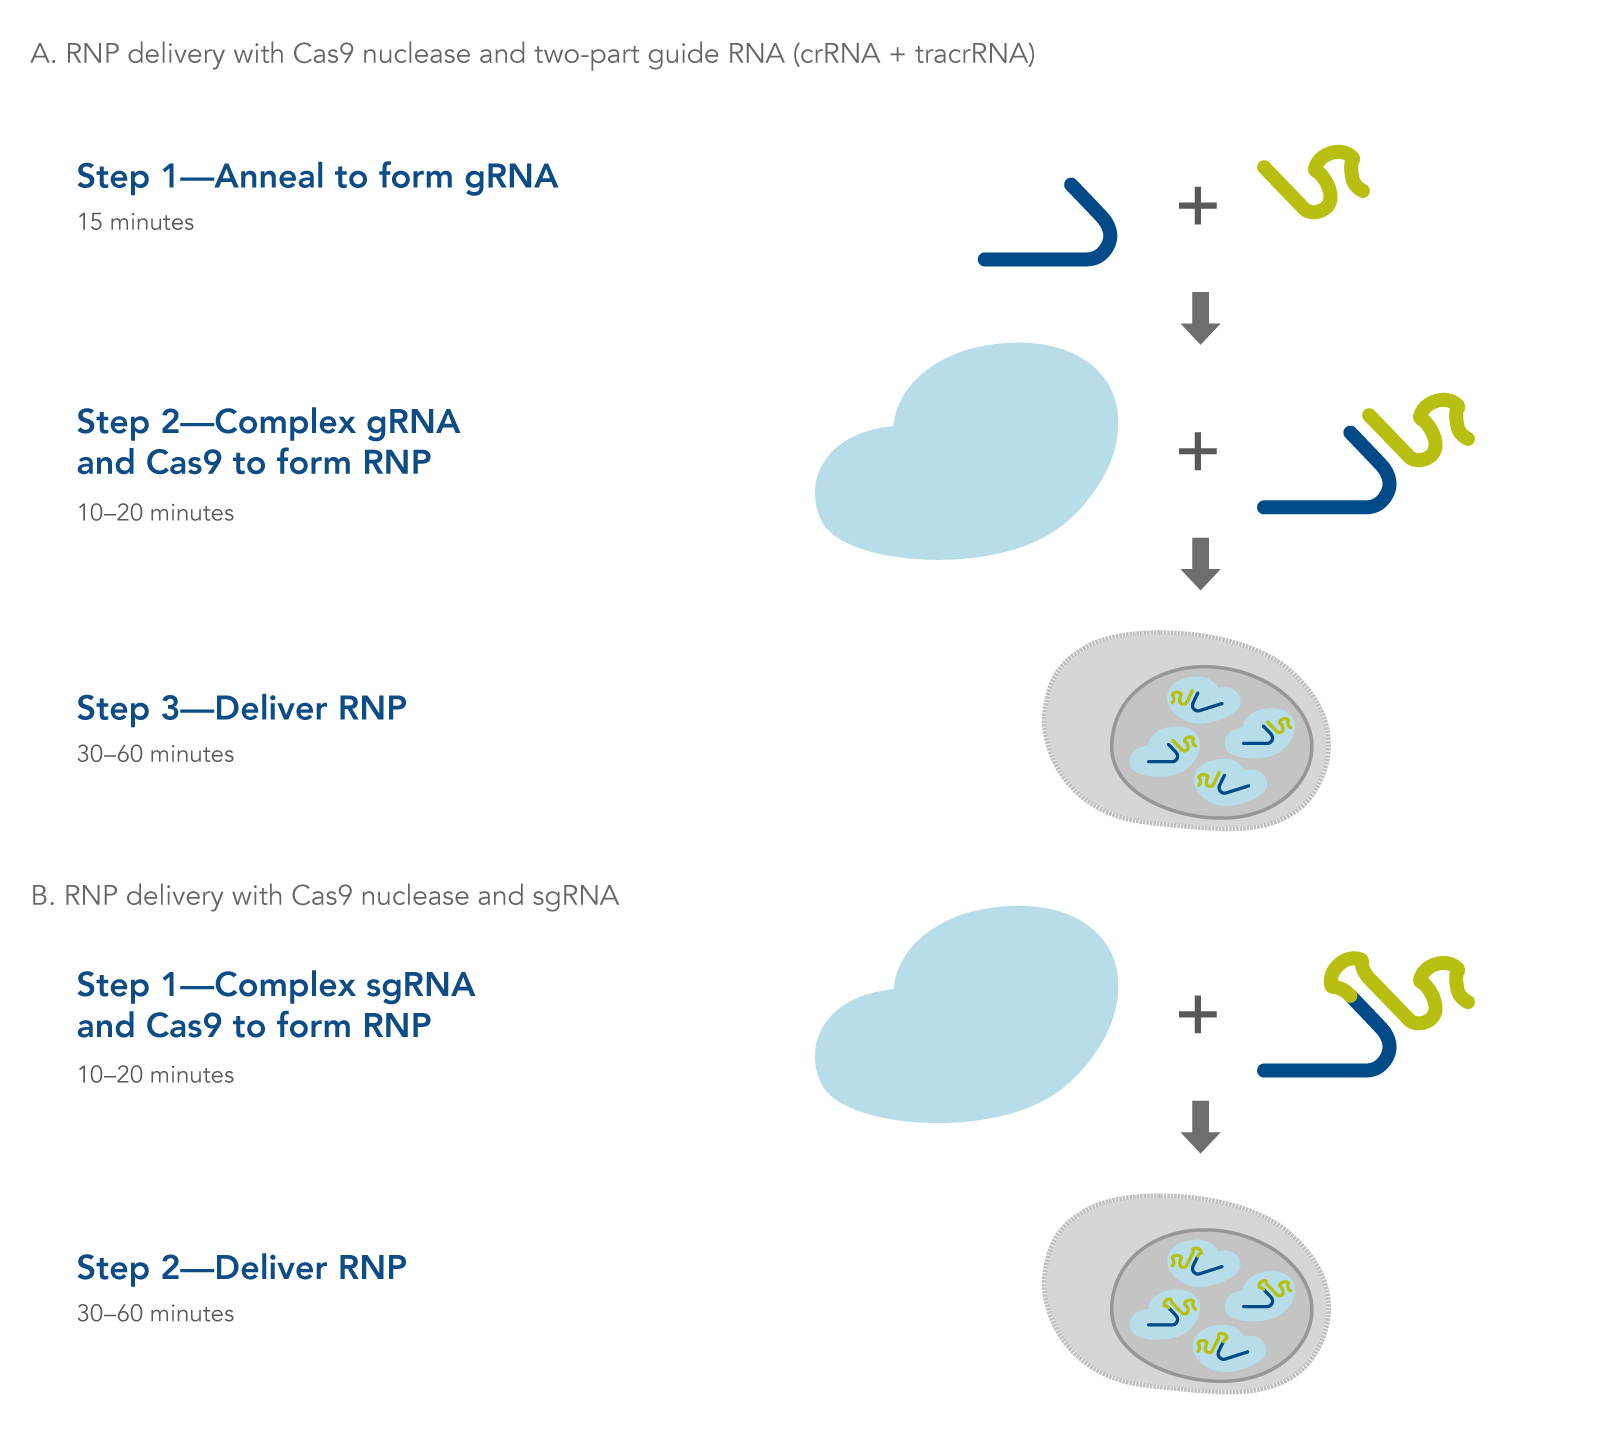 Transfection of ribonucleoprotein in CRISPR experiments (2-part gRNA and sgRNA)